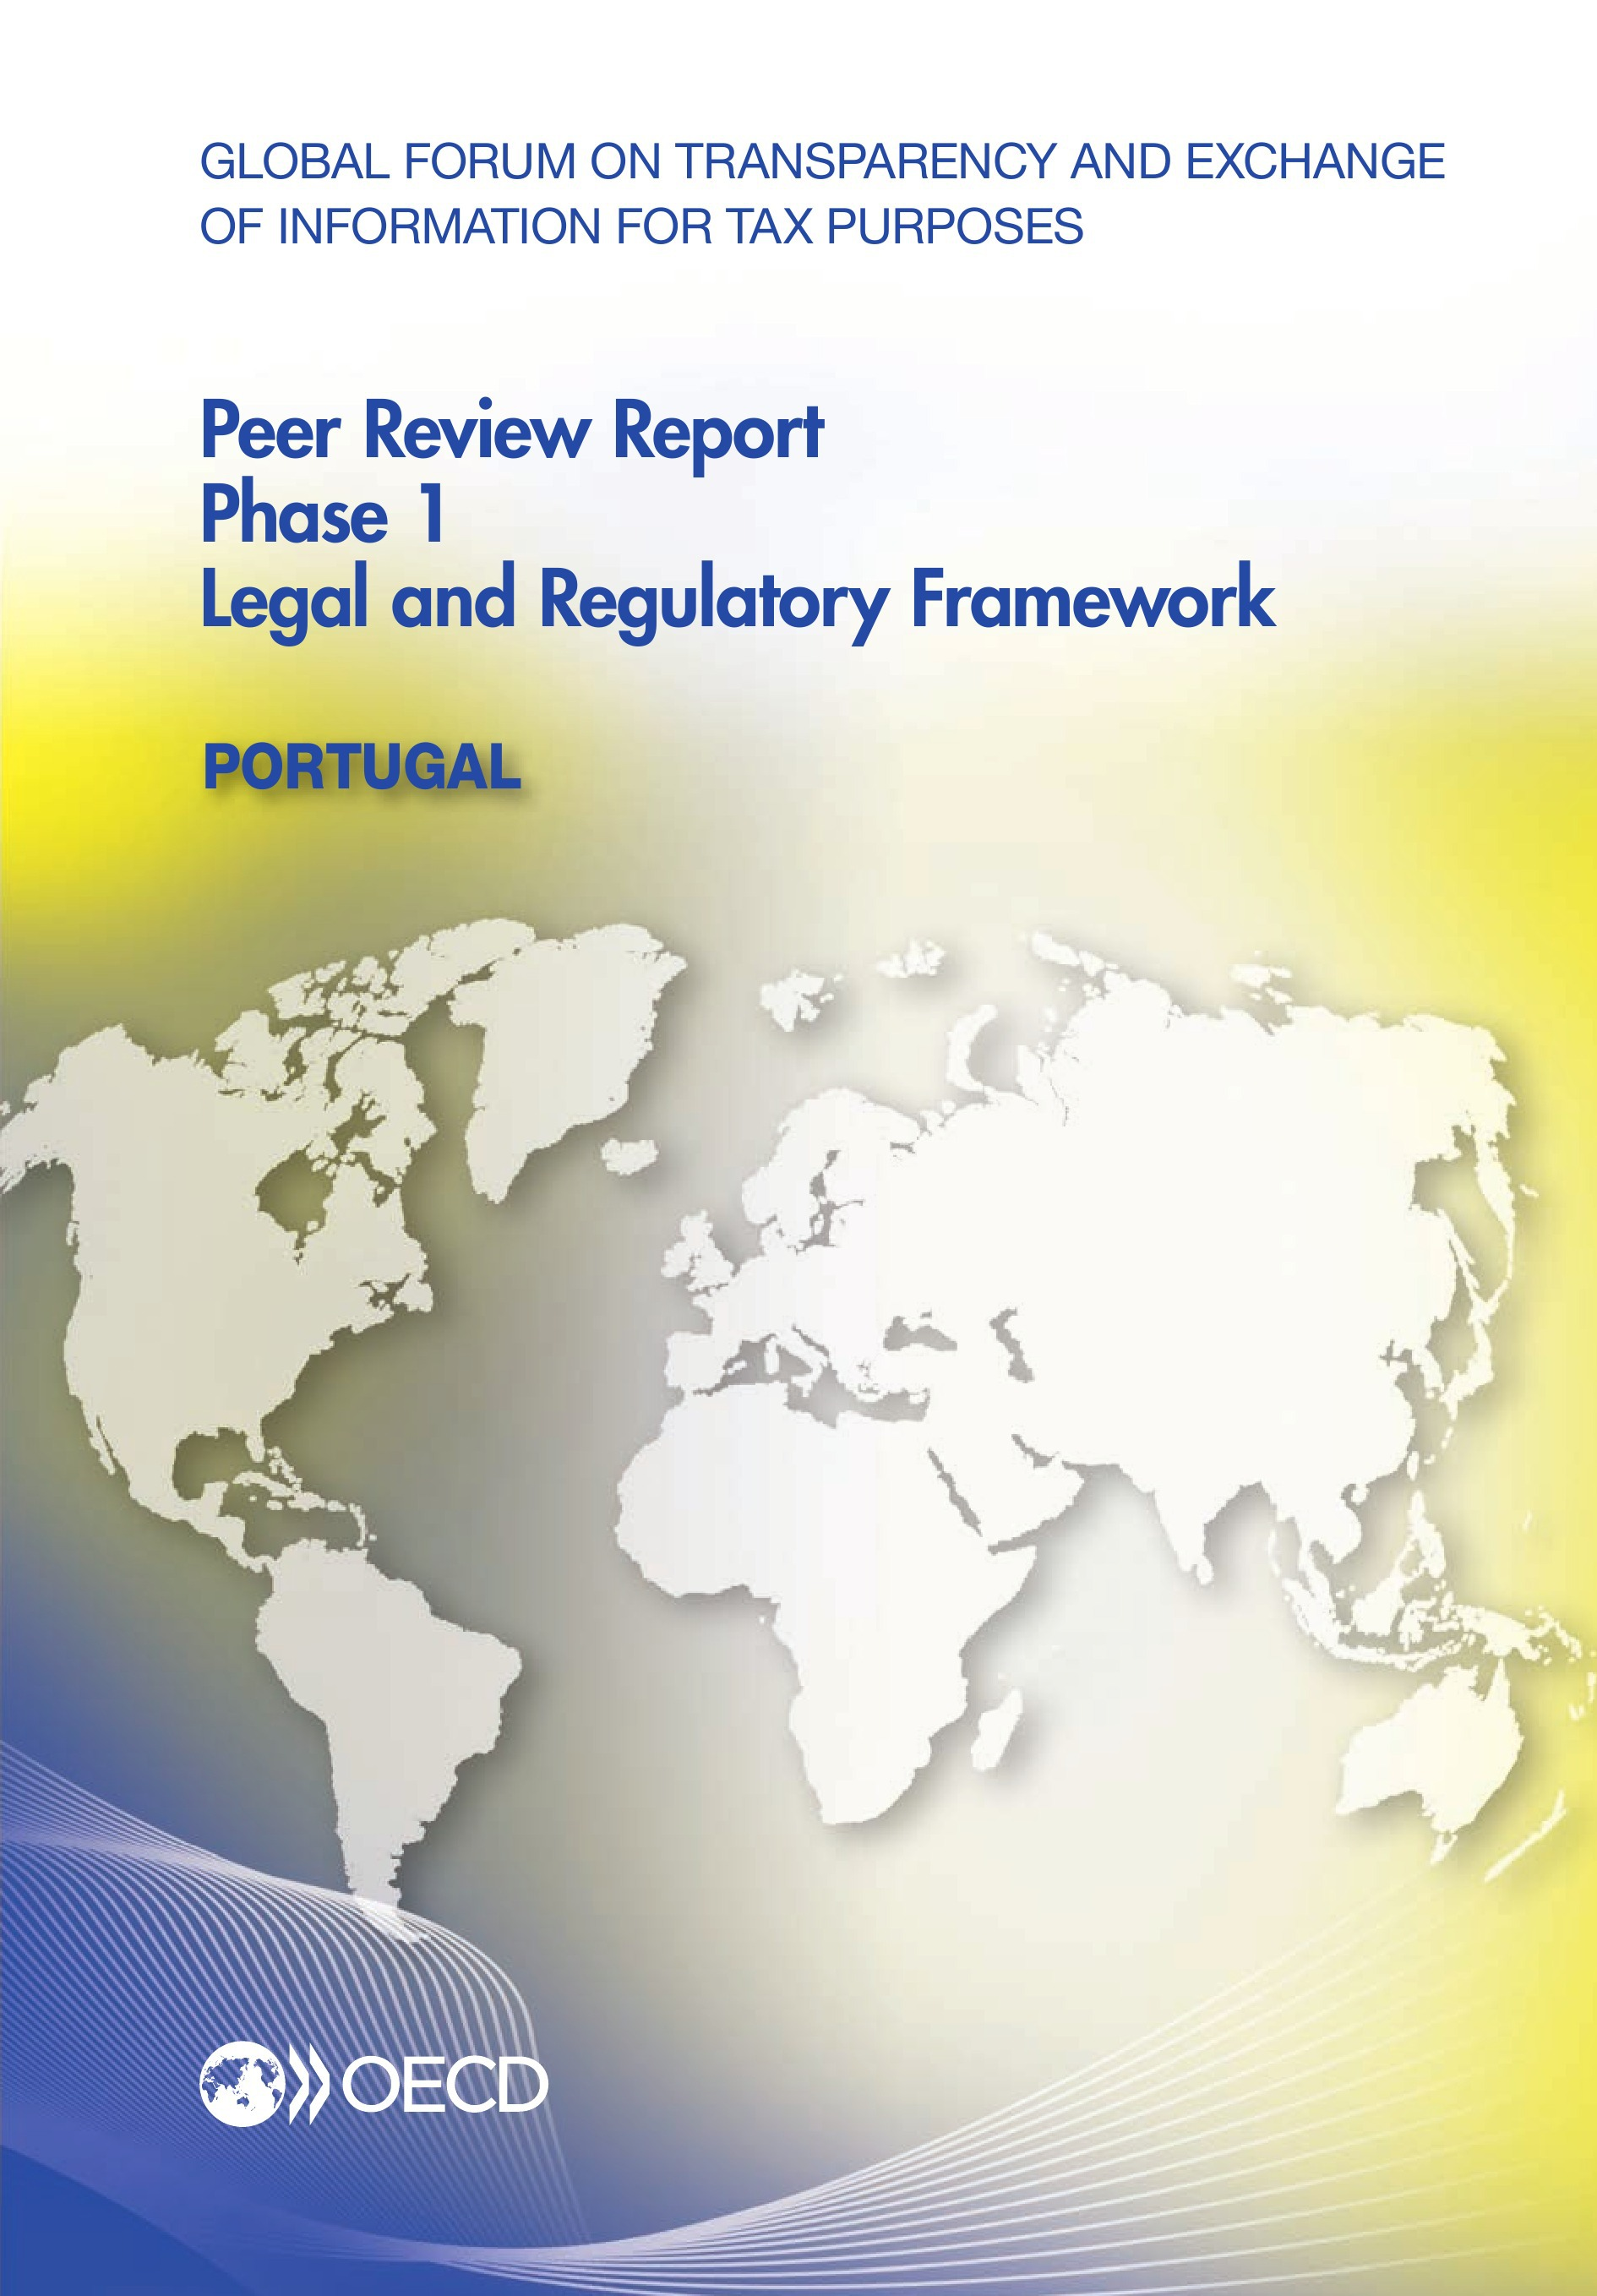 Global Forum on Transparency and Exchange of Information for Tax Purposes Peer Reviews: Portugal 2013